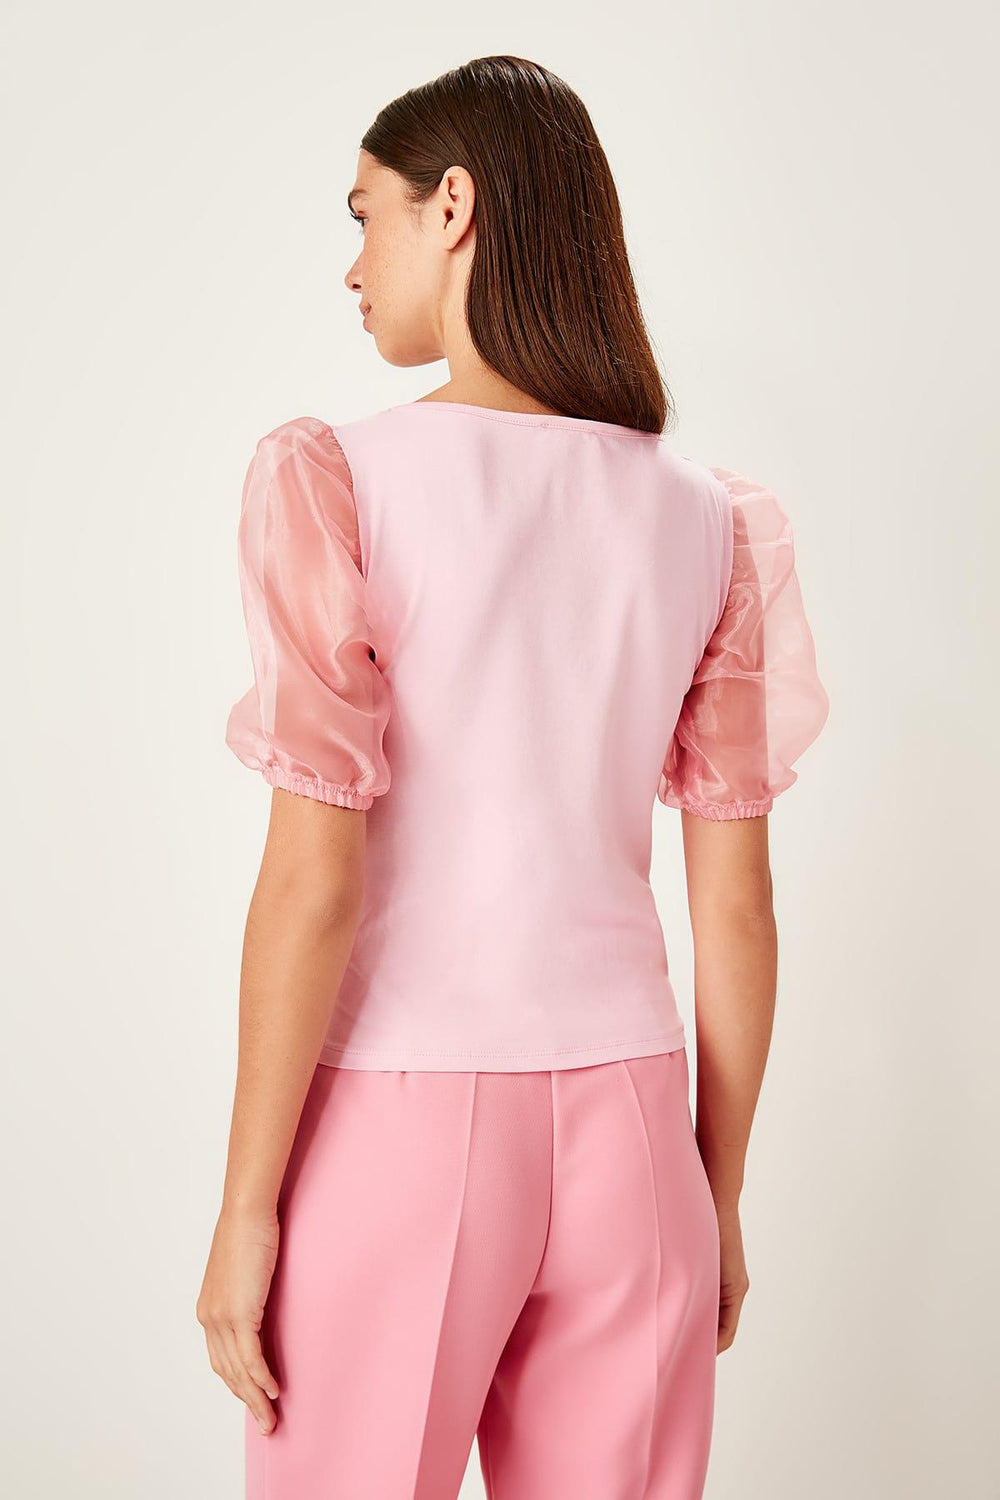 Pink Handles Detailed Knitted Blouse - Top Maxy